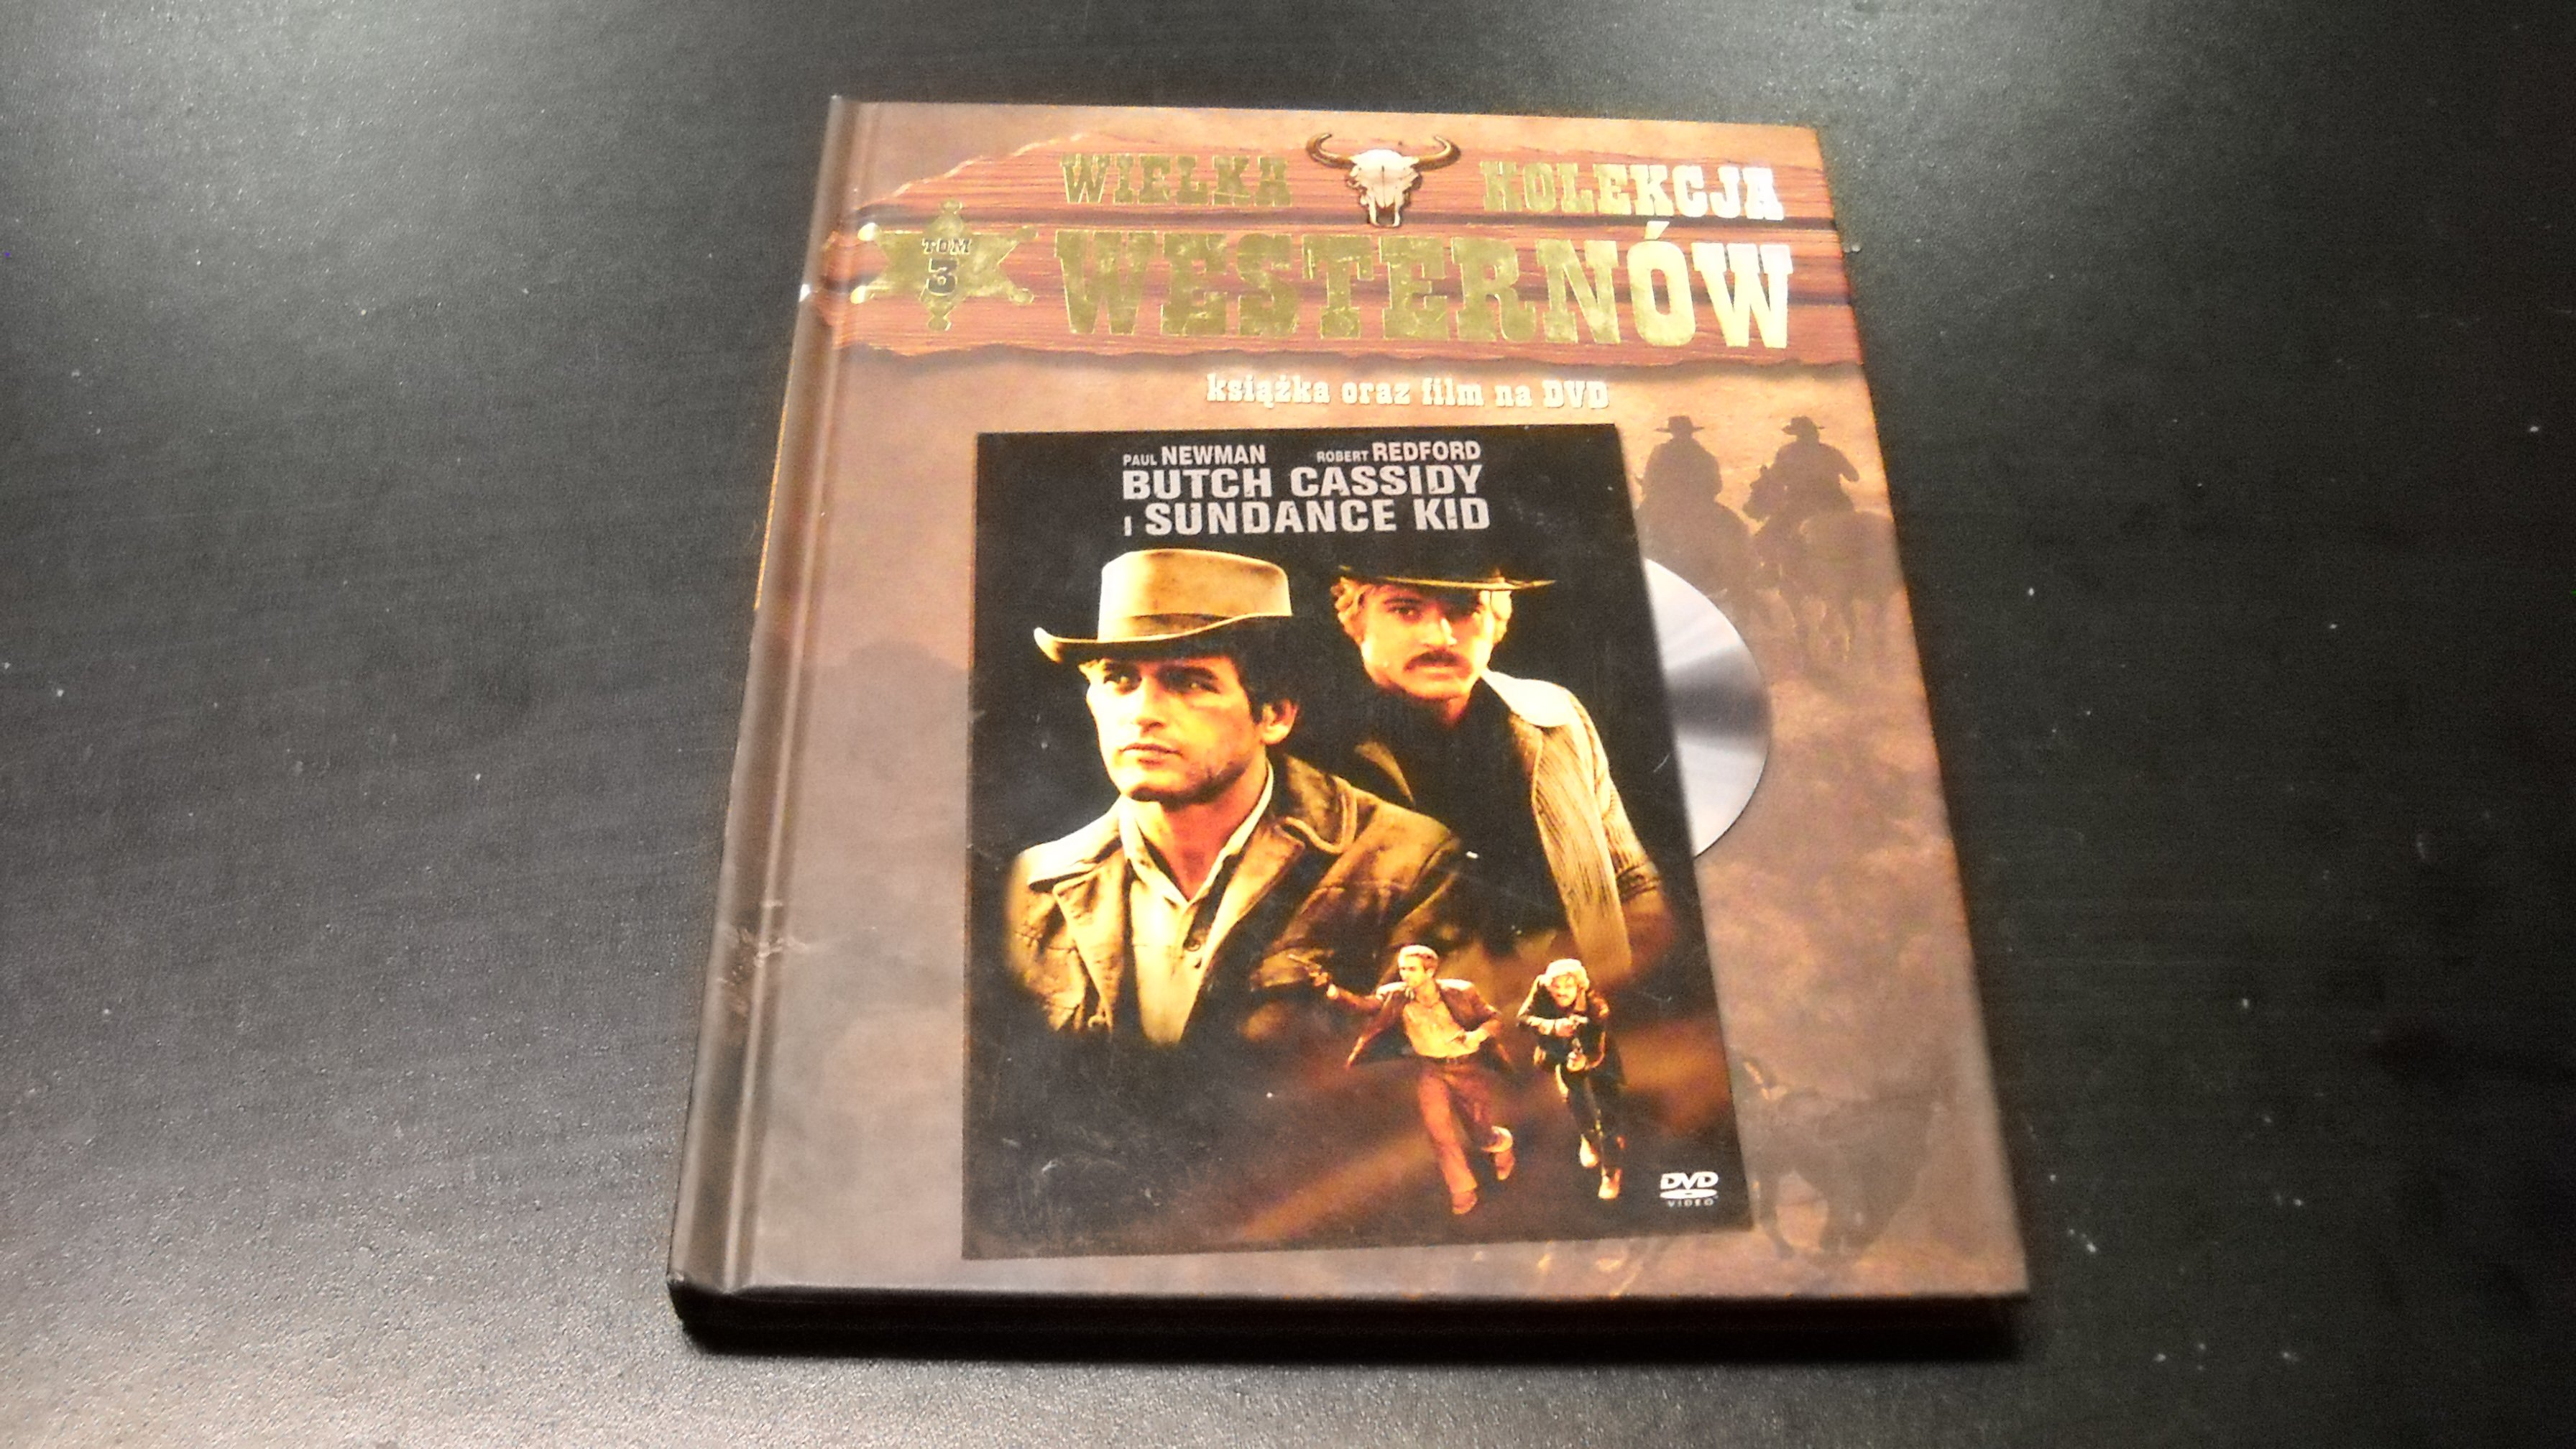 BUTCH CASSIDY I SUNDANCE - REDFORD NEWMAN  DVD - Opole AlleOpole.pl